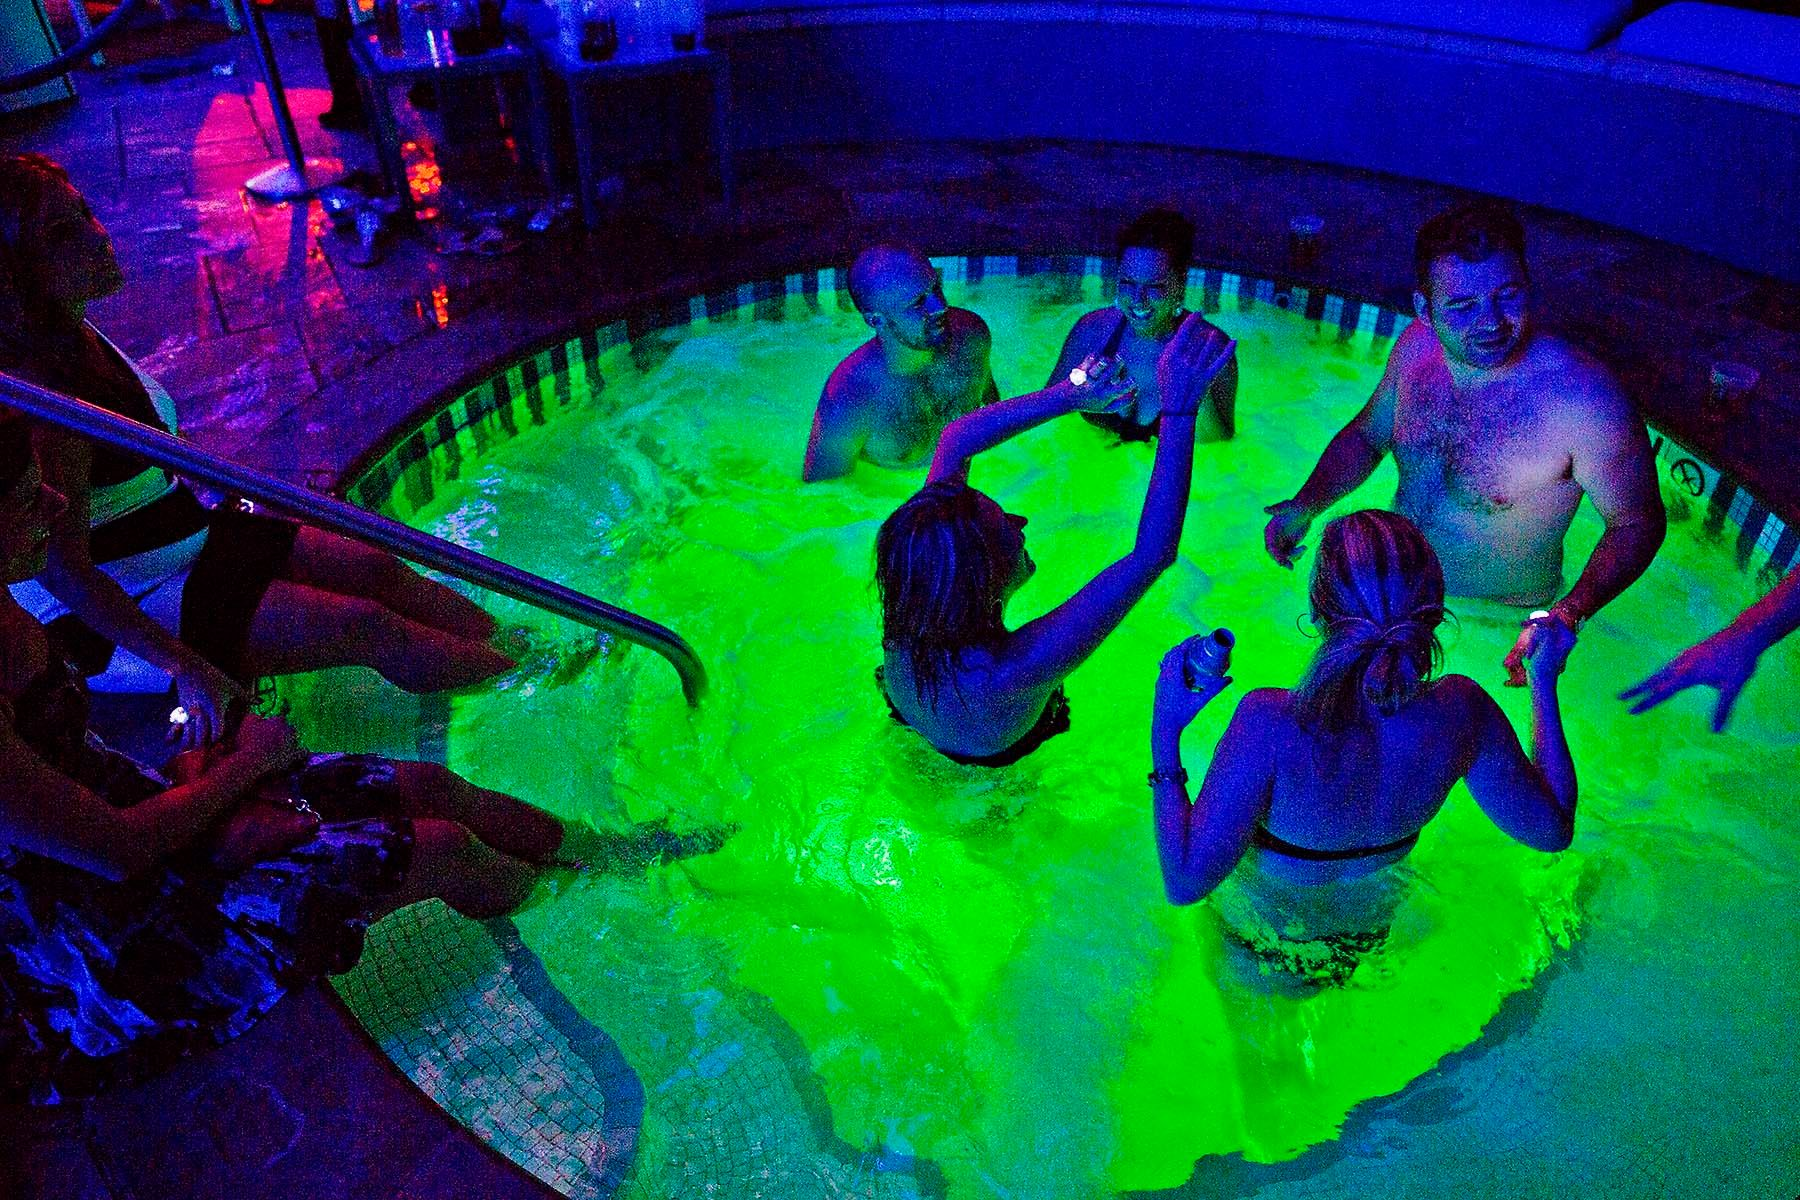 The Pool a nightclub at Harrahs resort casino with a party host by girl next door playmate bunny Kendra Wilkinson